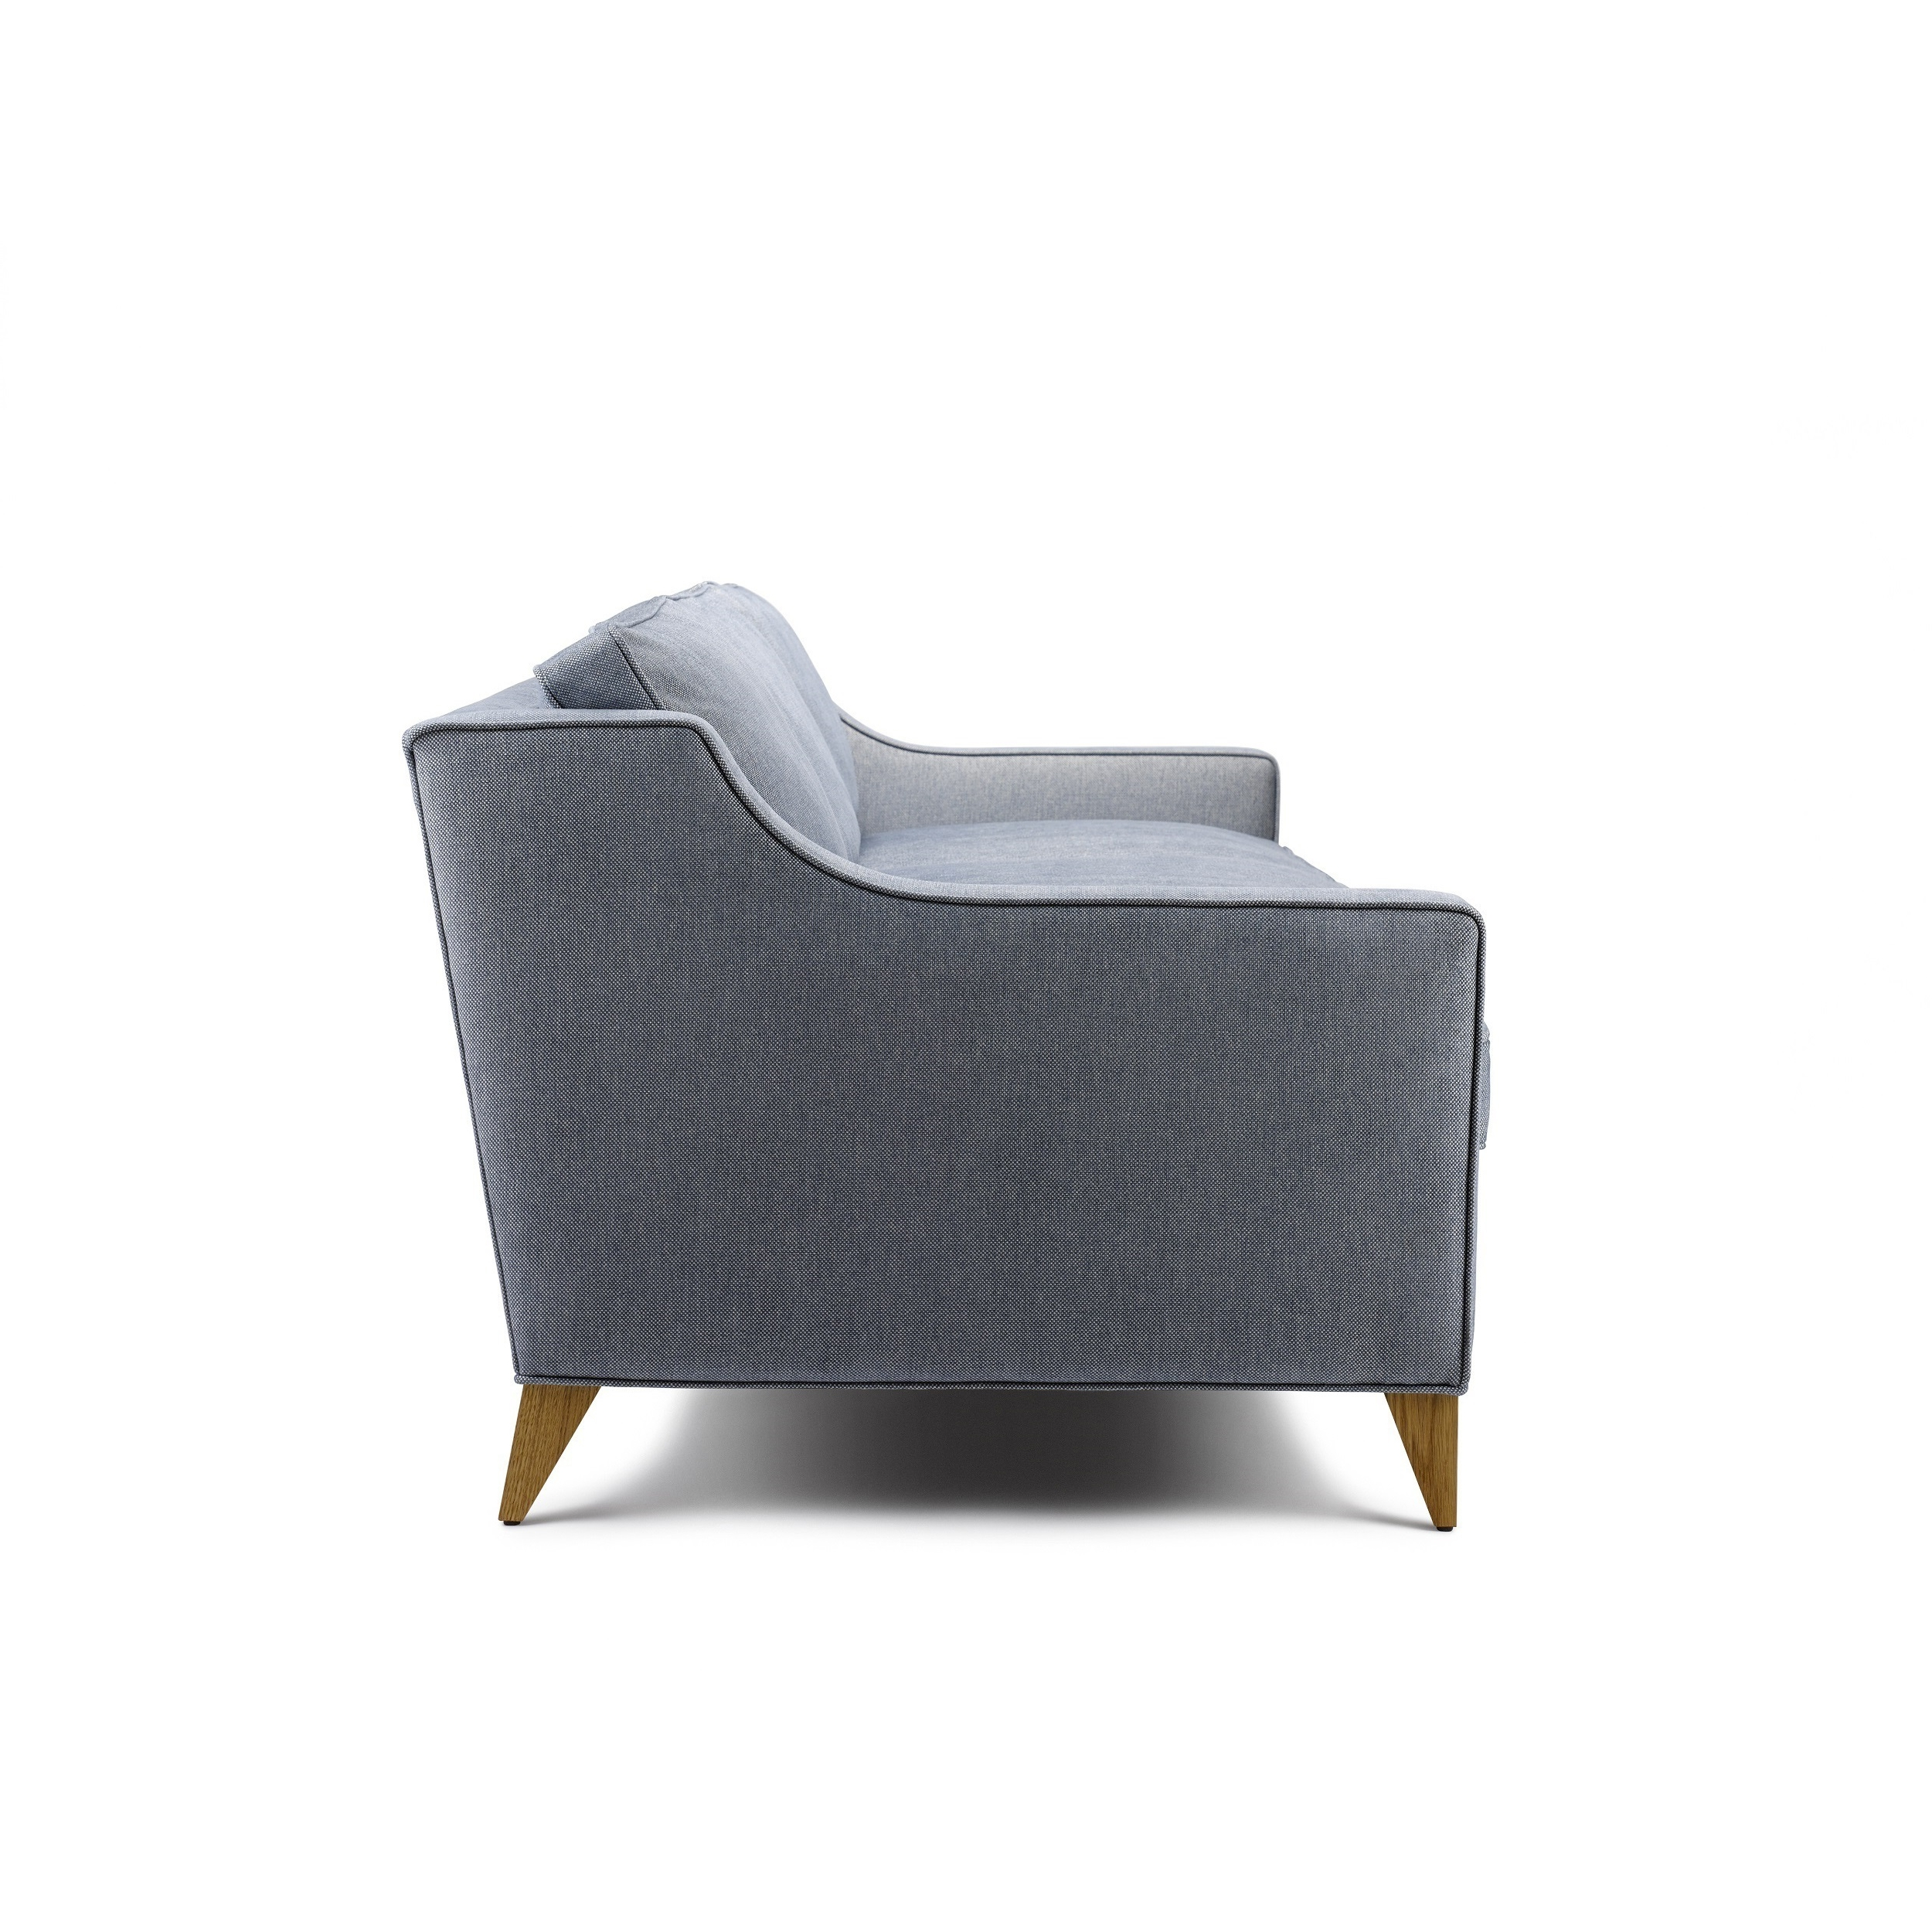 REPOSER SOFA_STUART SCOTT (1).jpg